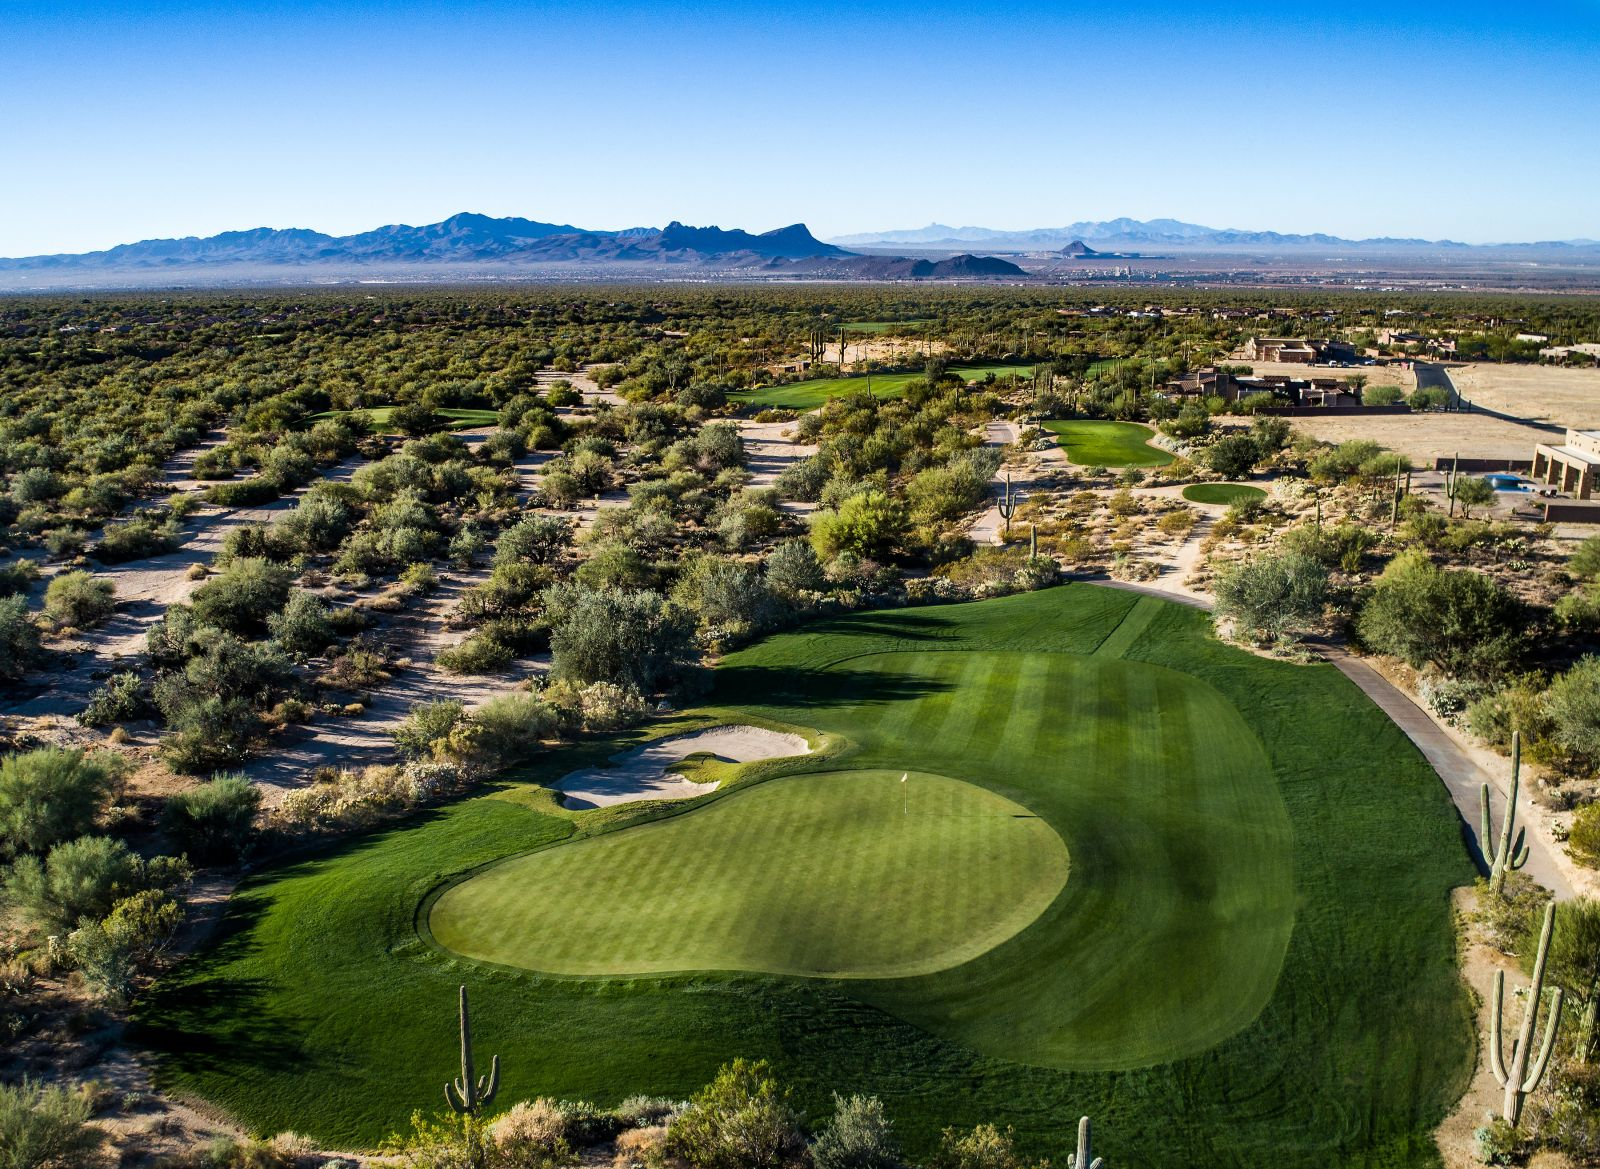 Aerial view of hole 4 on the Wild Burro course